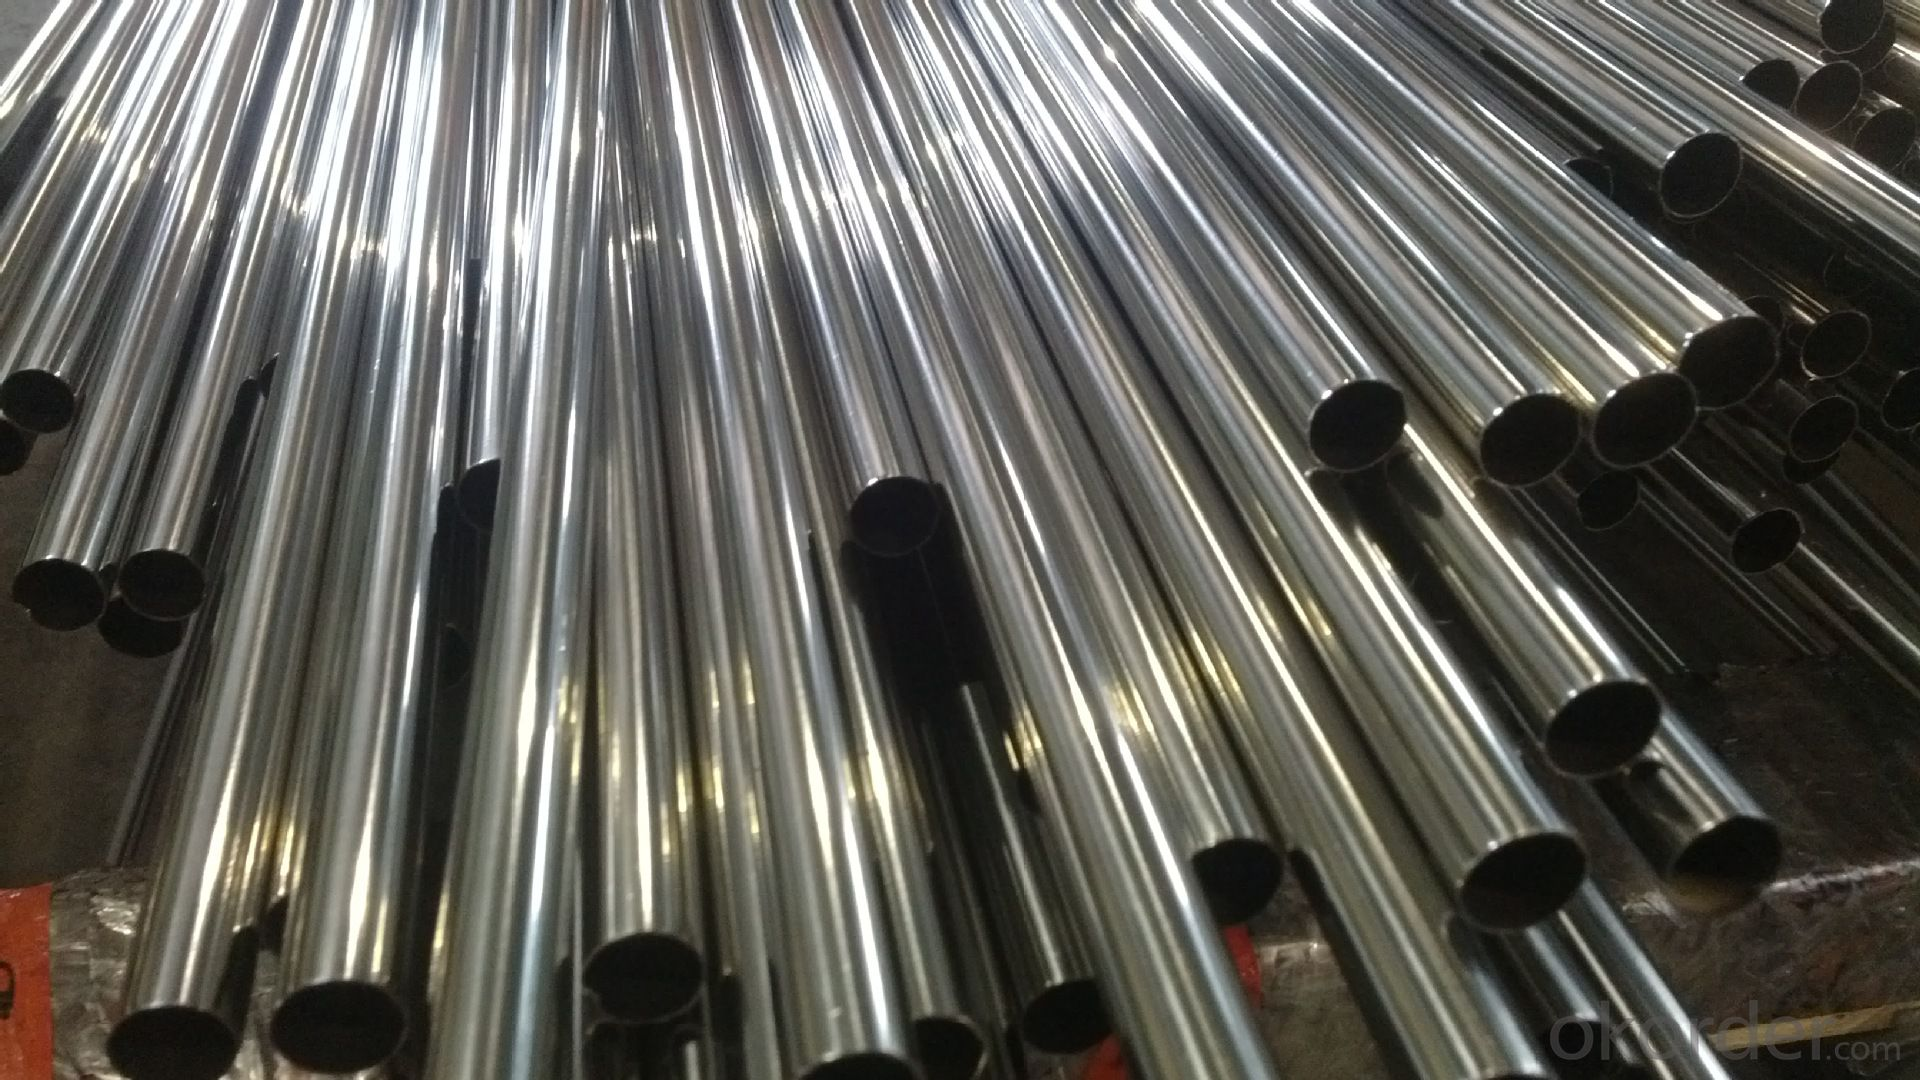 High selling quality bright stainless steel pipe 347